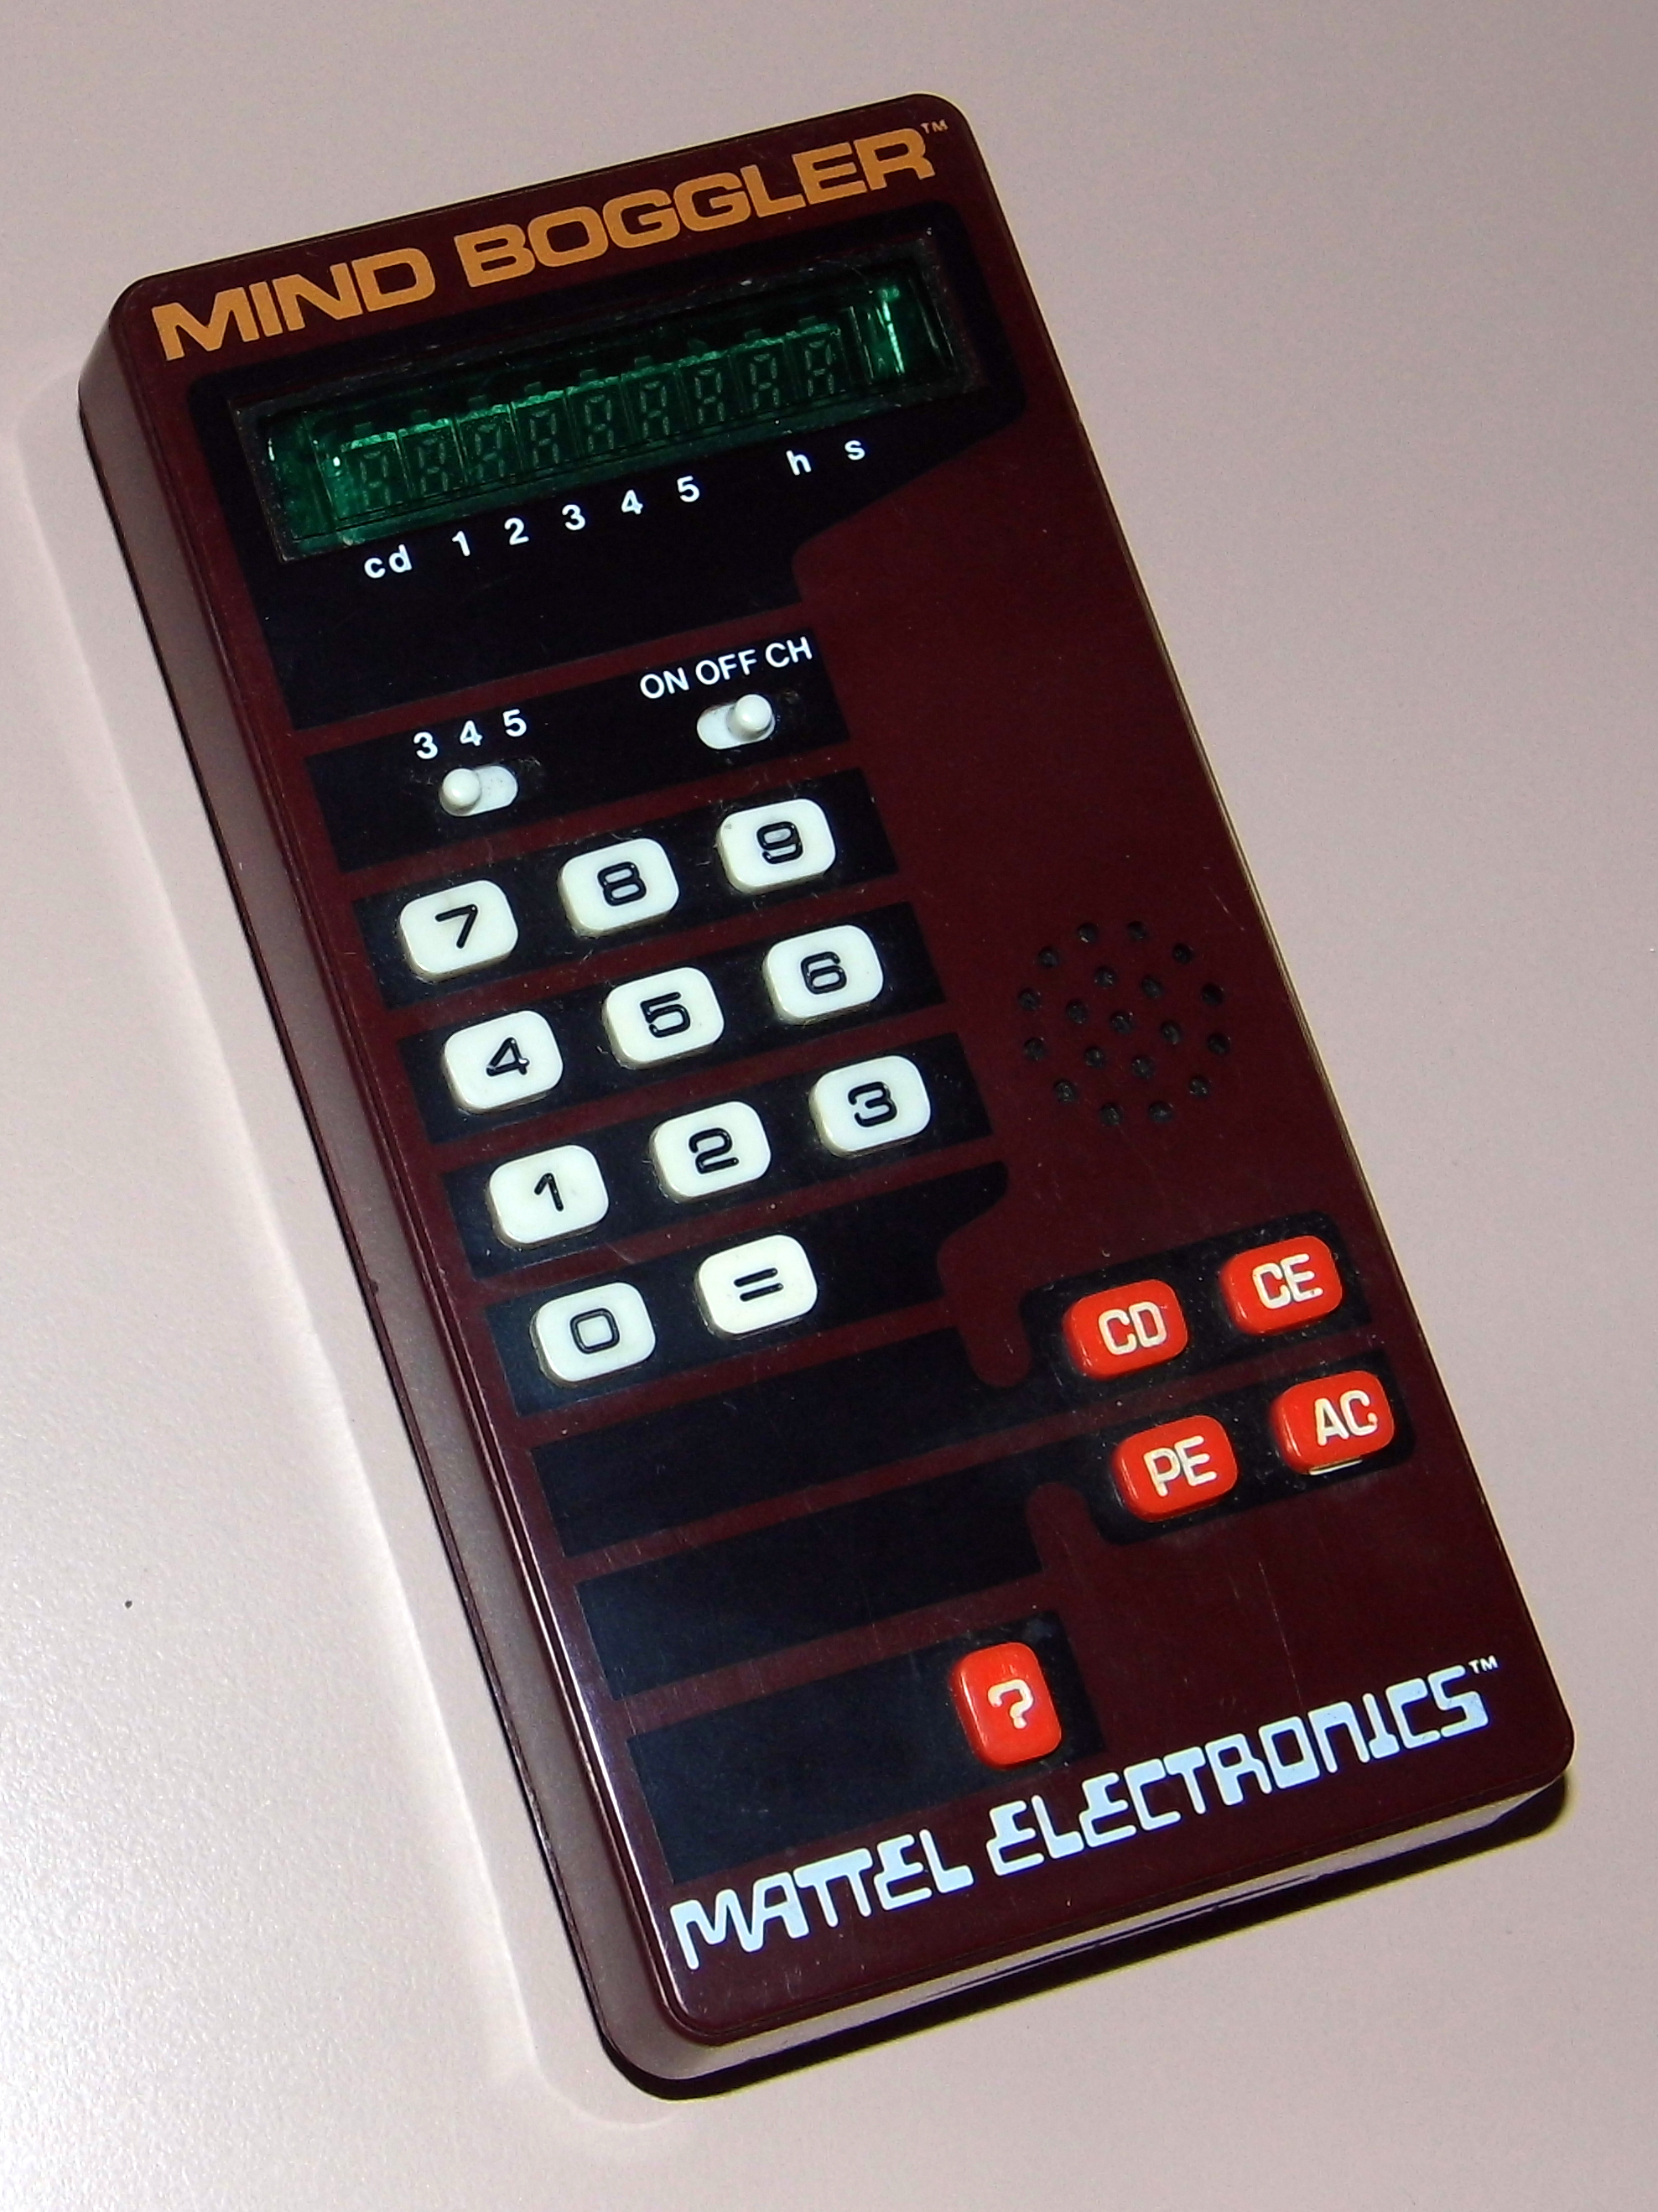 File:Mind Boggler by Mattel Electronics, Model 2626, Made In Hong Kong,